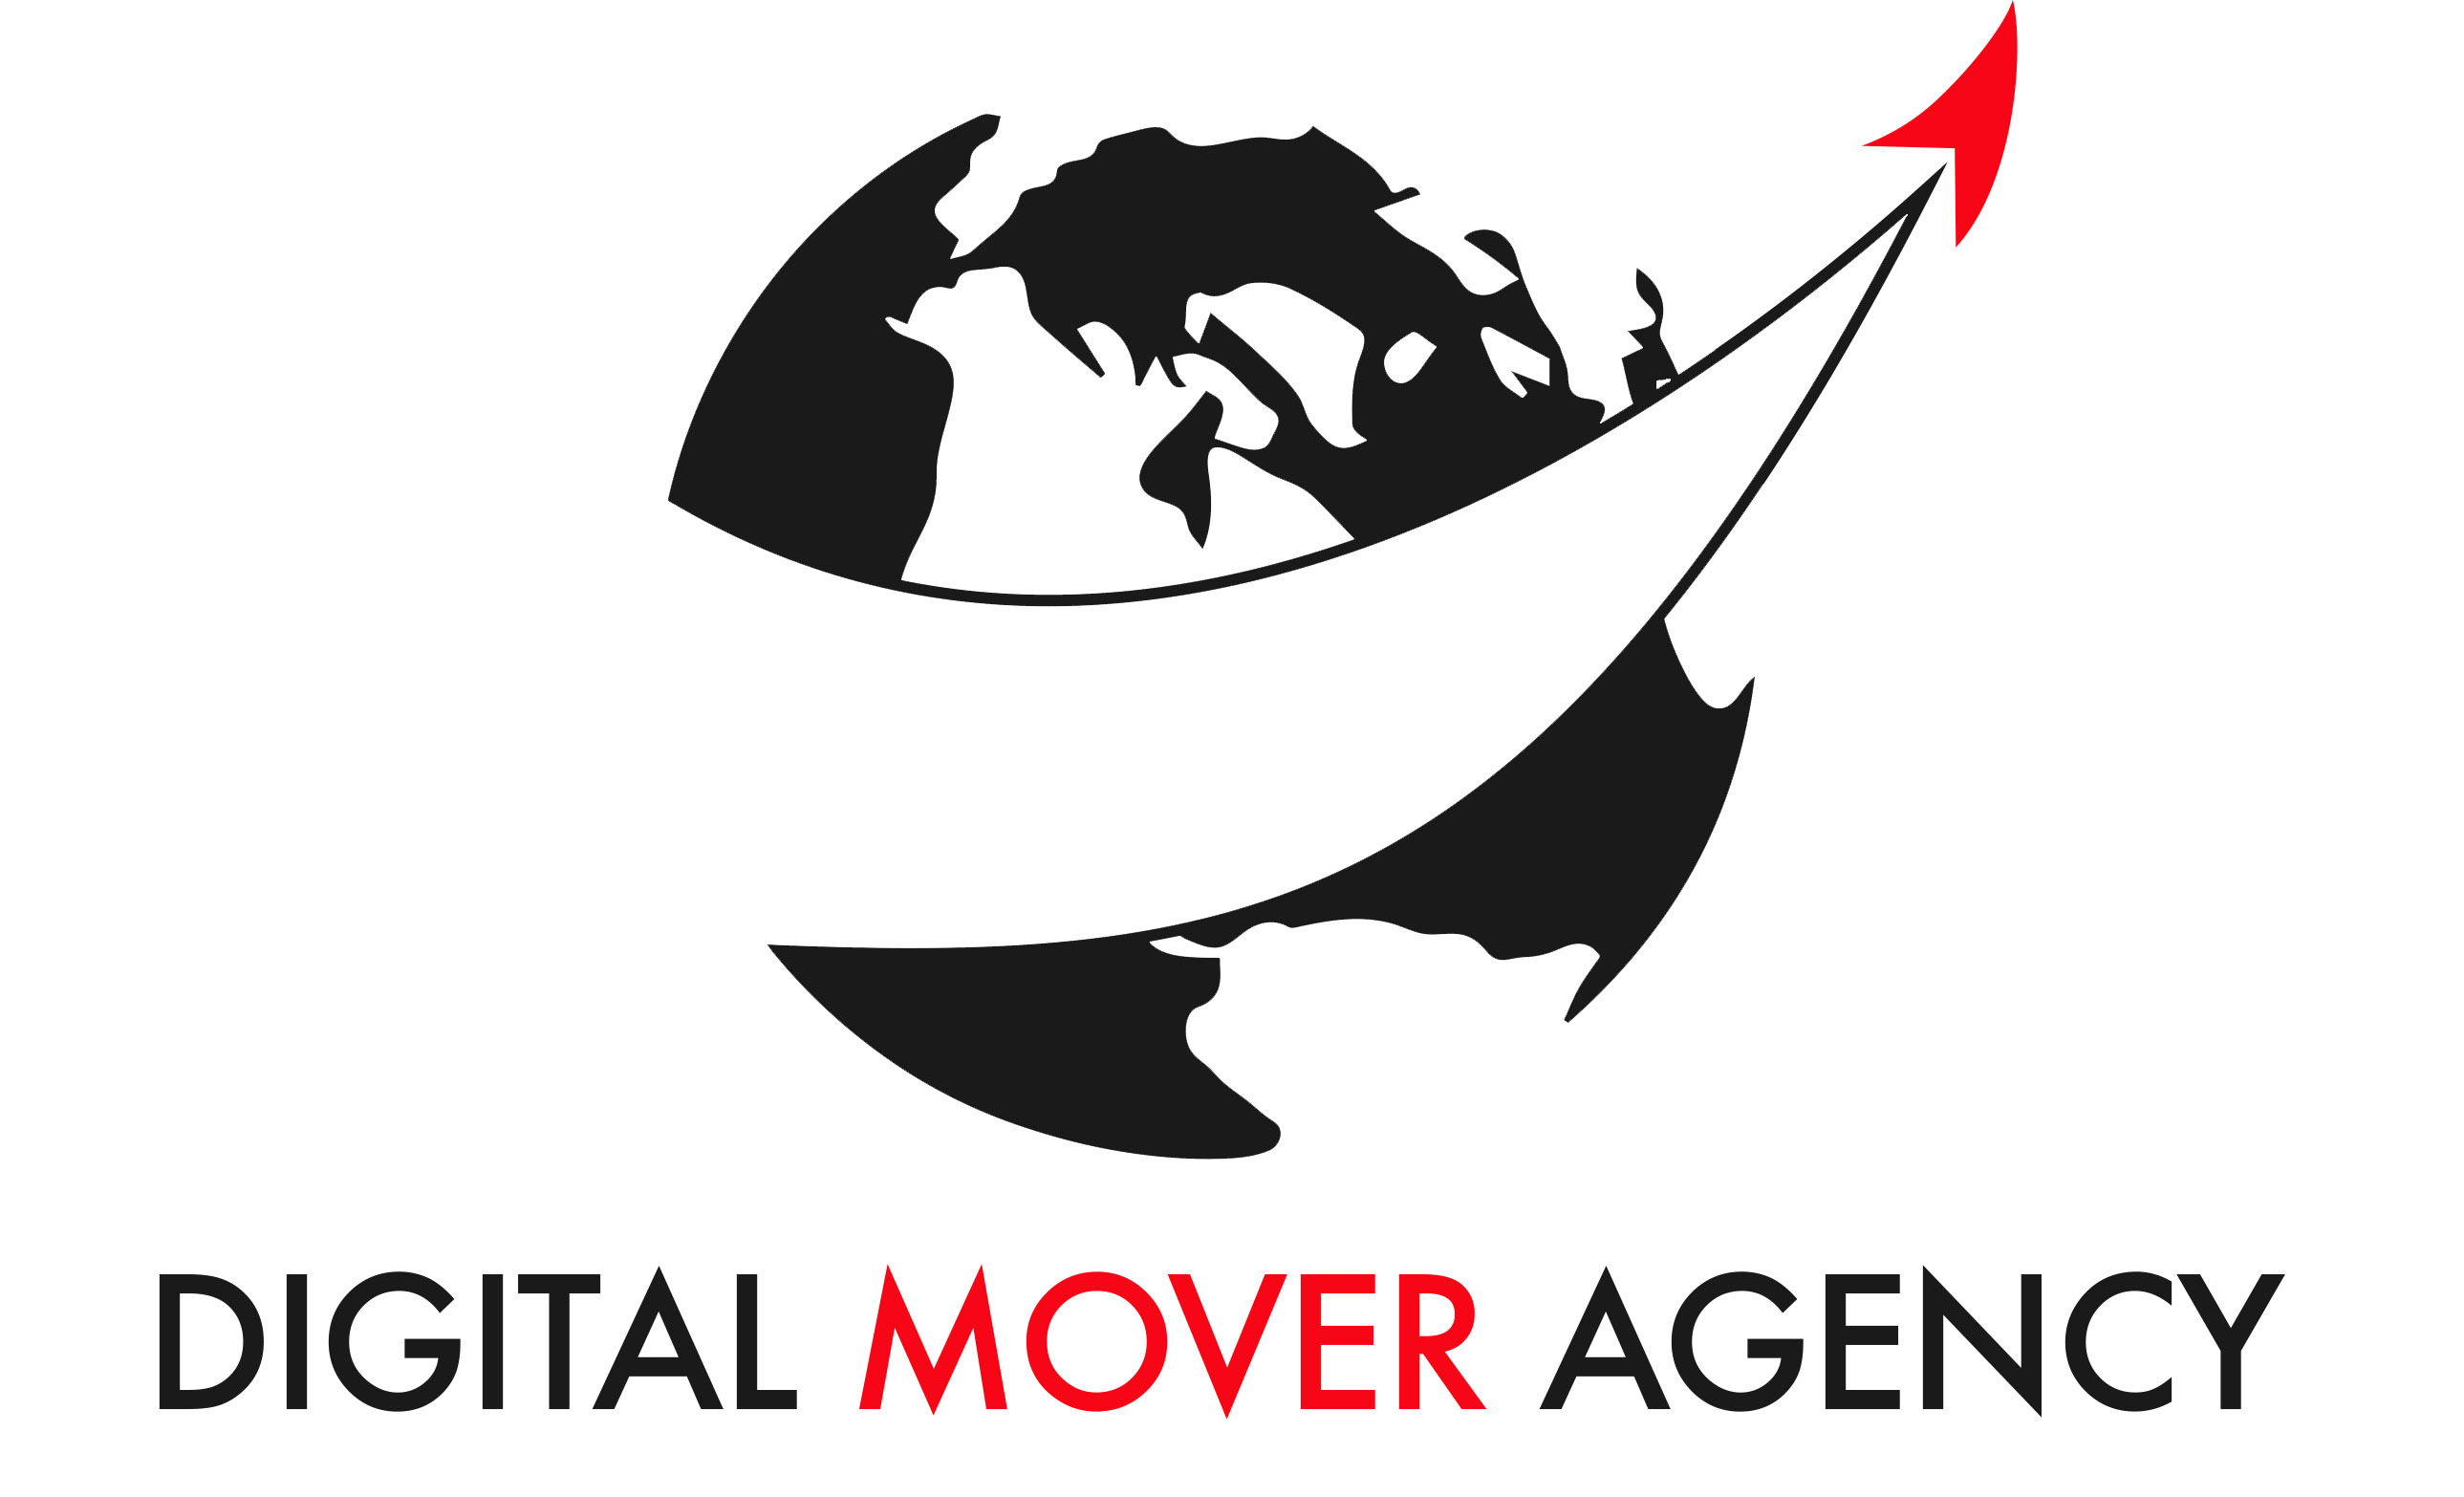 Digital Mover Agency Houston SEO